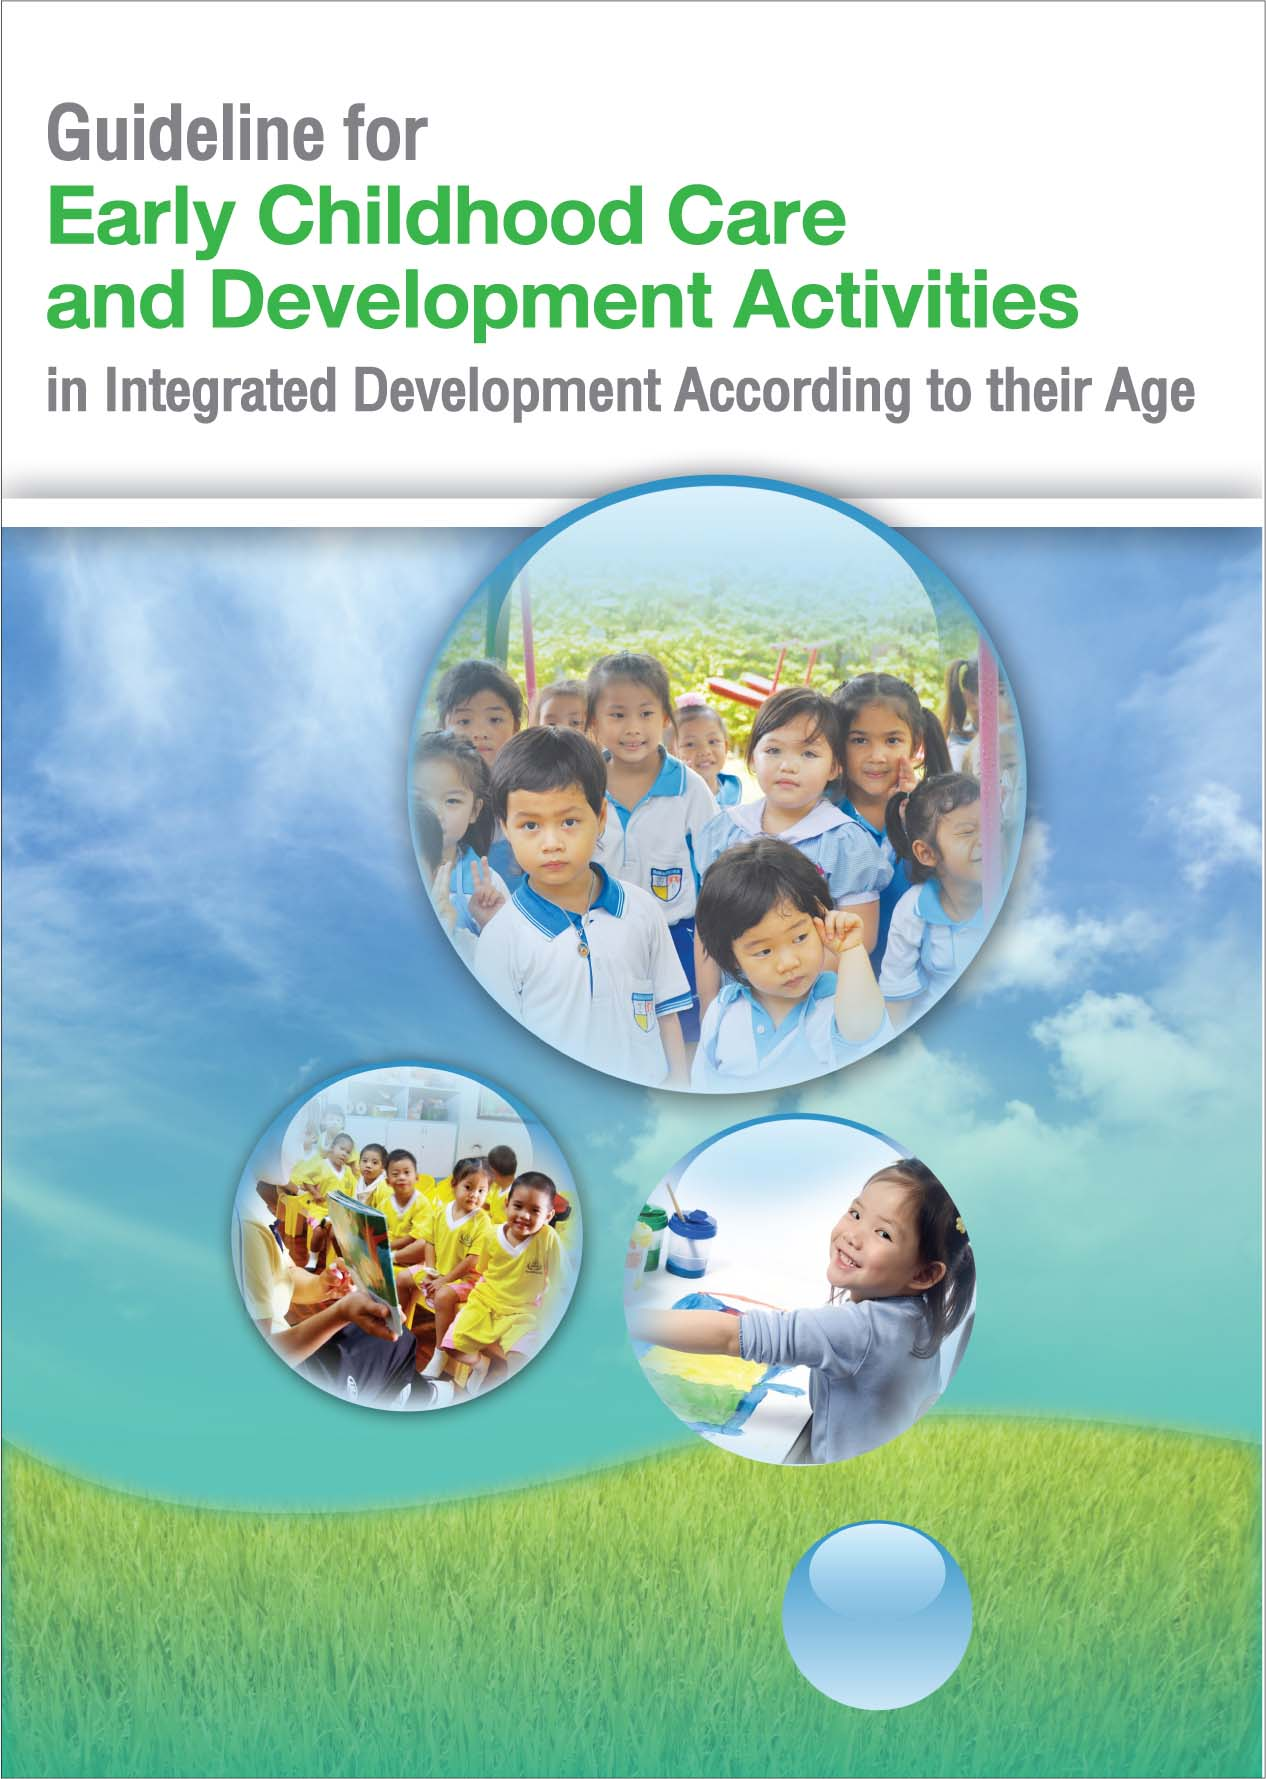 Guideline for Early Childhood Care and Development Activities in Integrated Total Development According to their Age